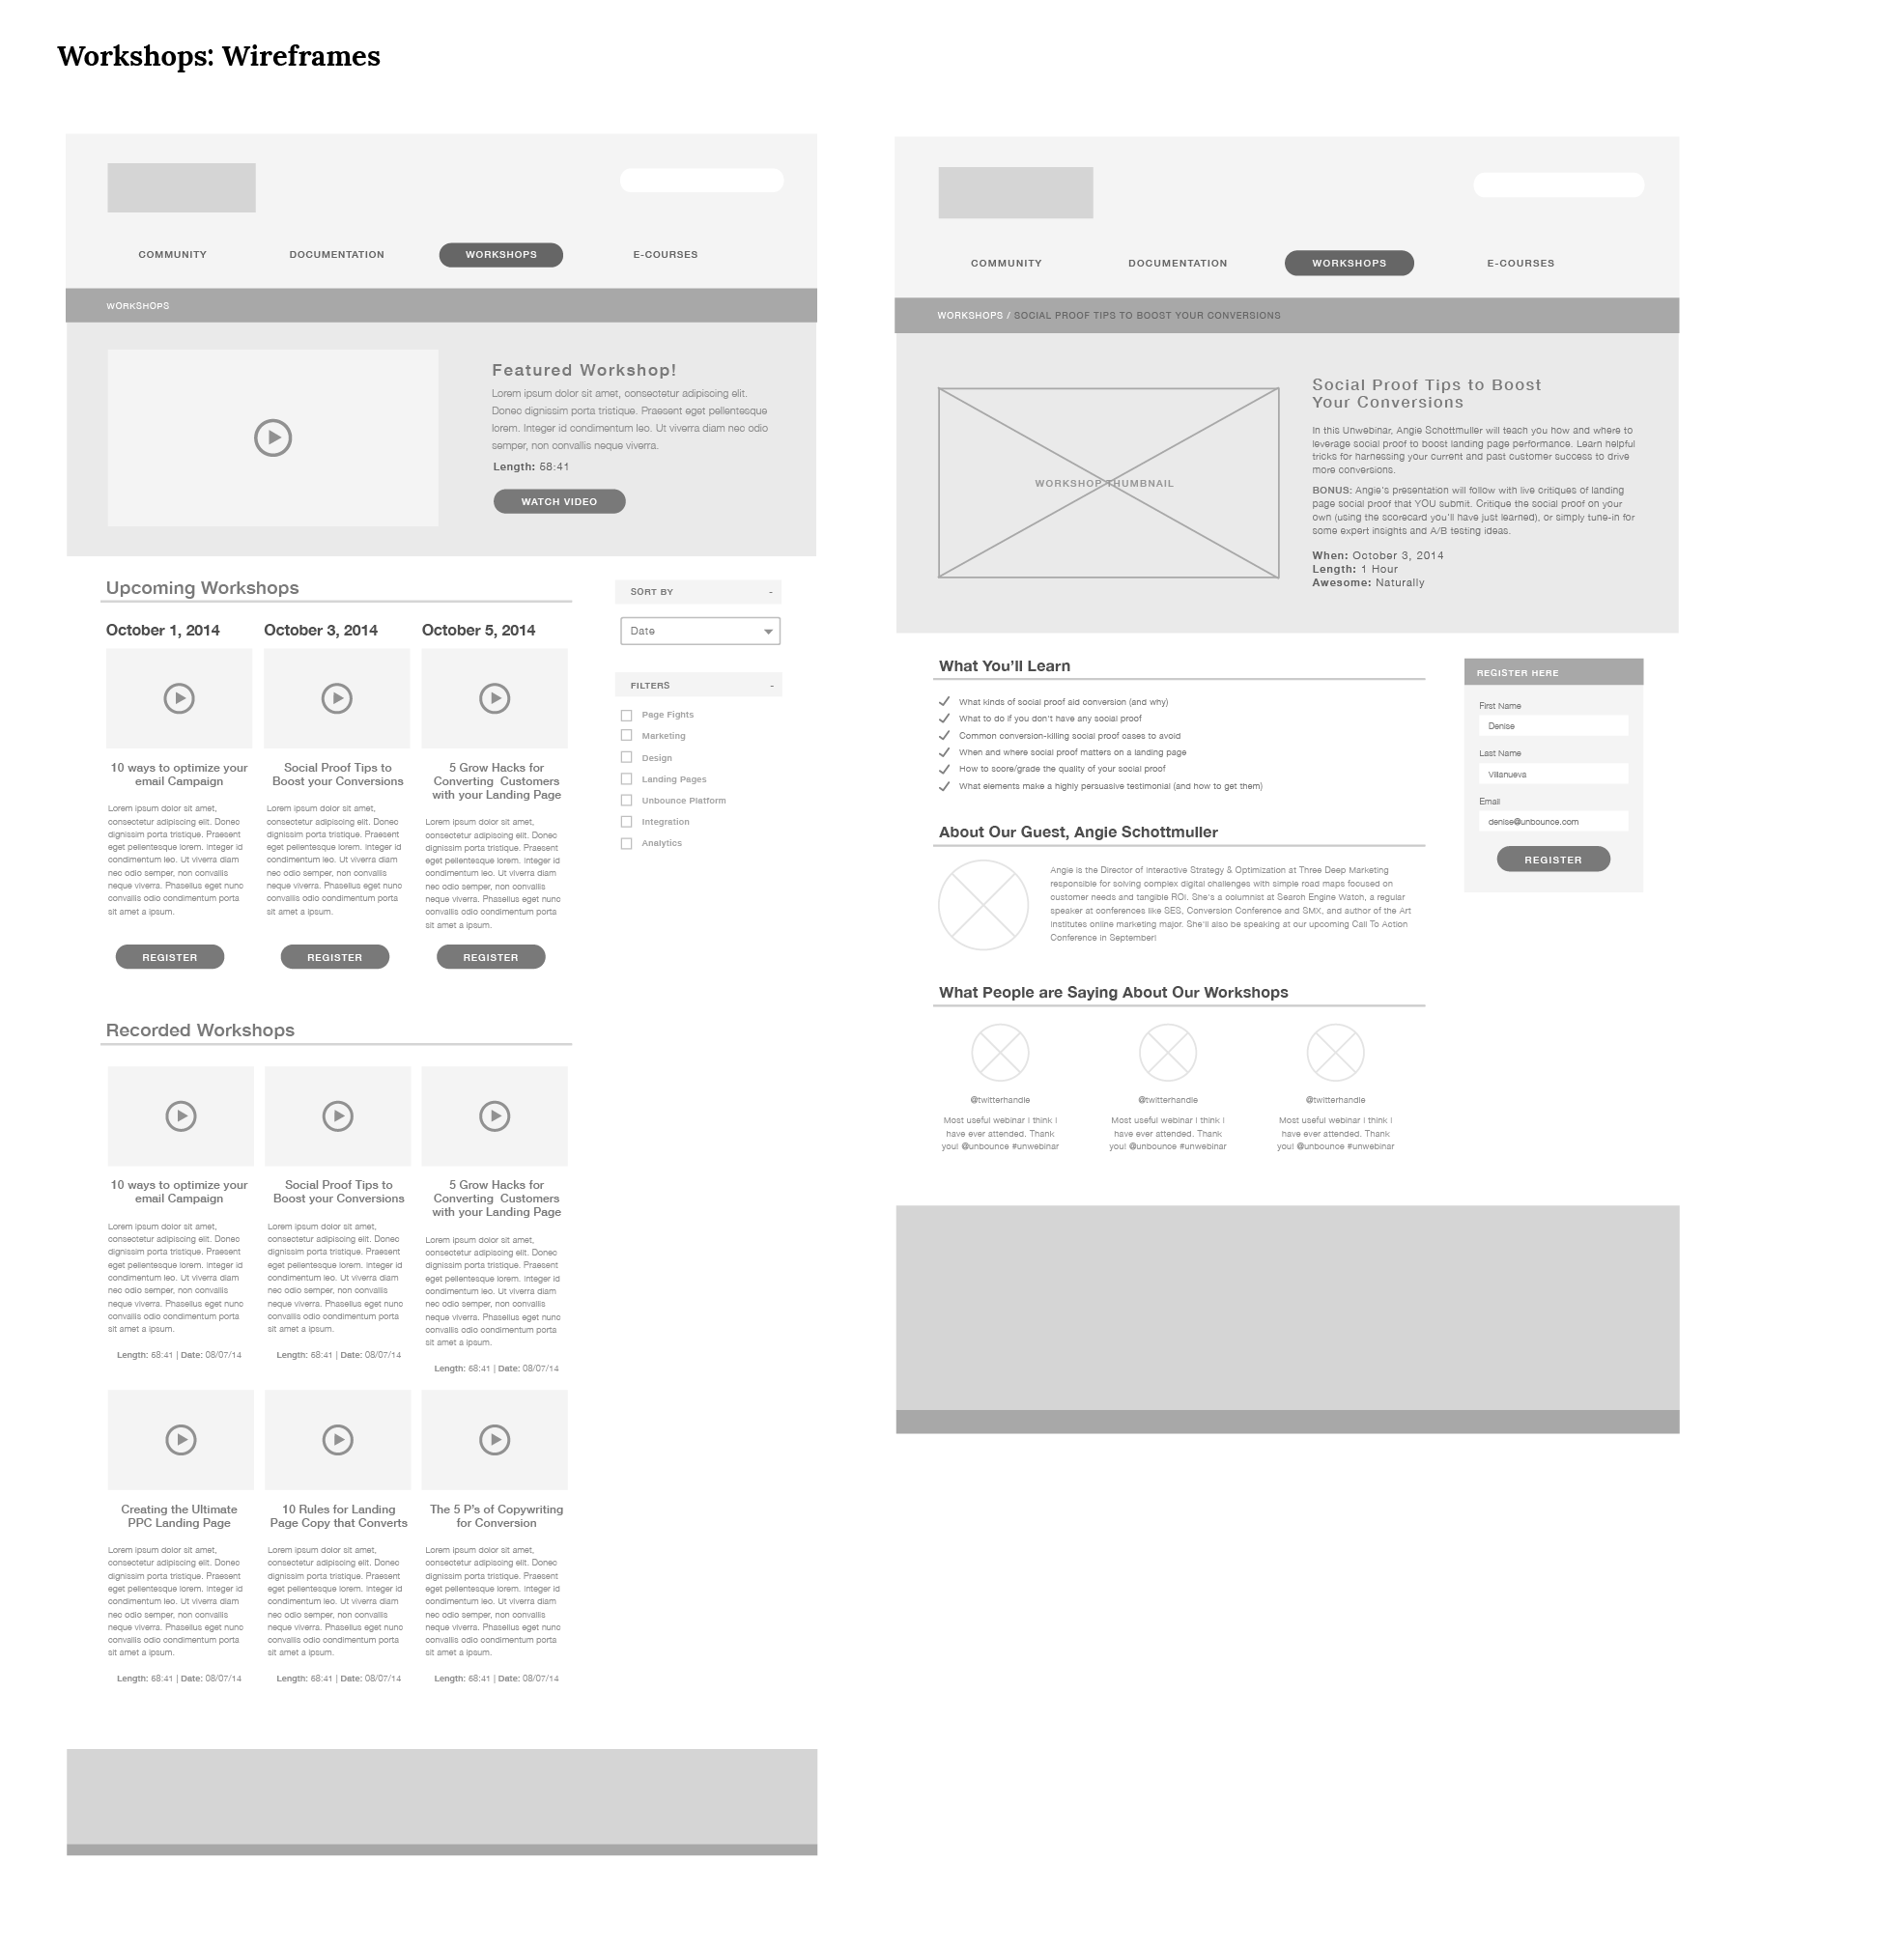 Workshops Wireframes